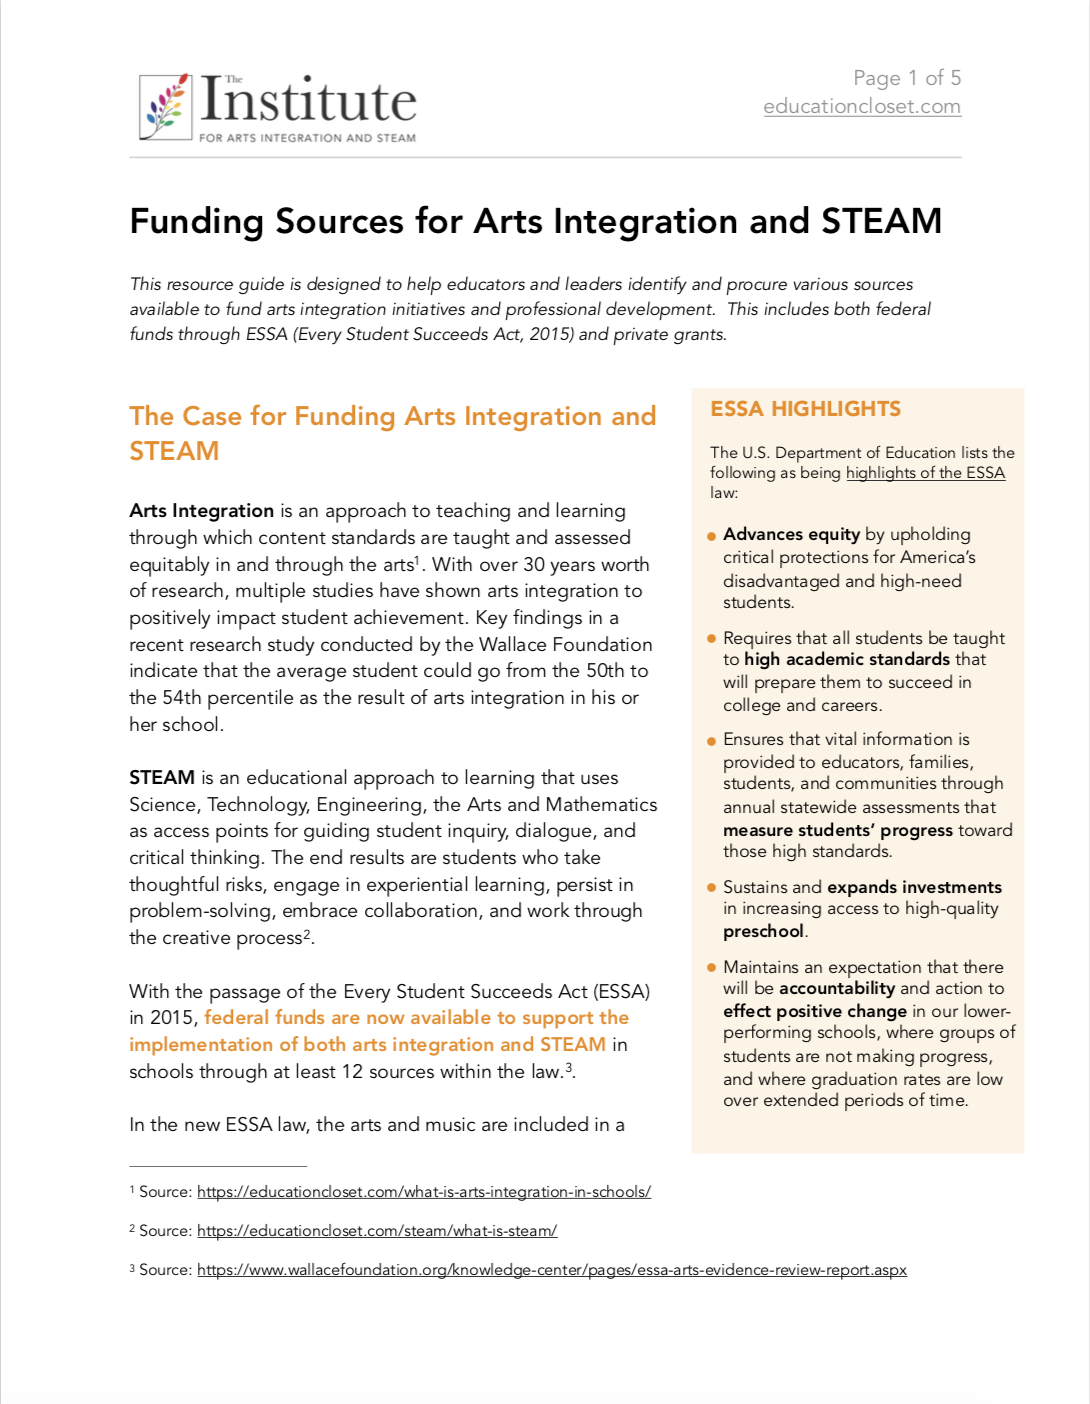 How To Find Arts Integration And Steam Funding For Schools